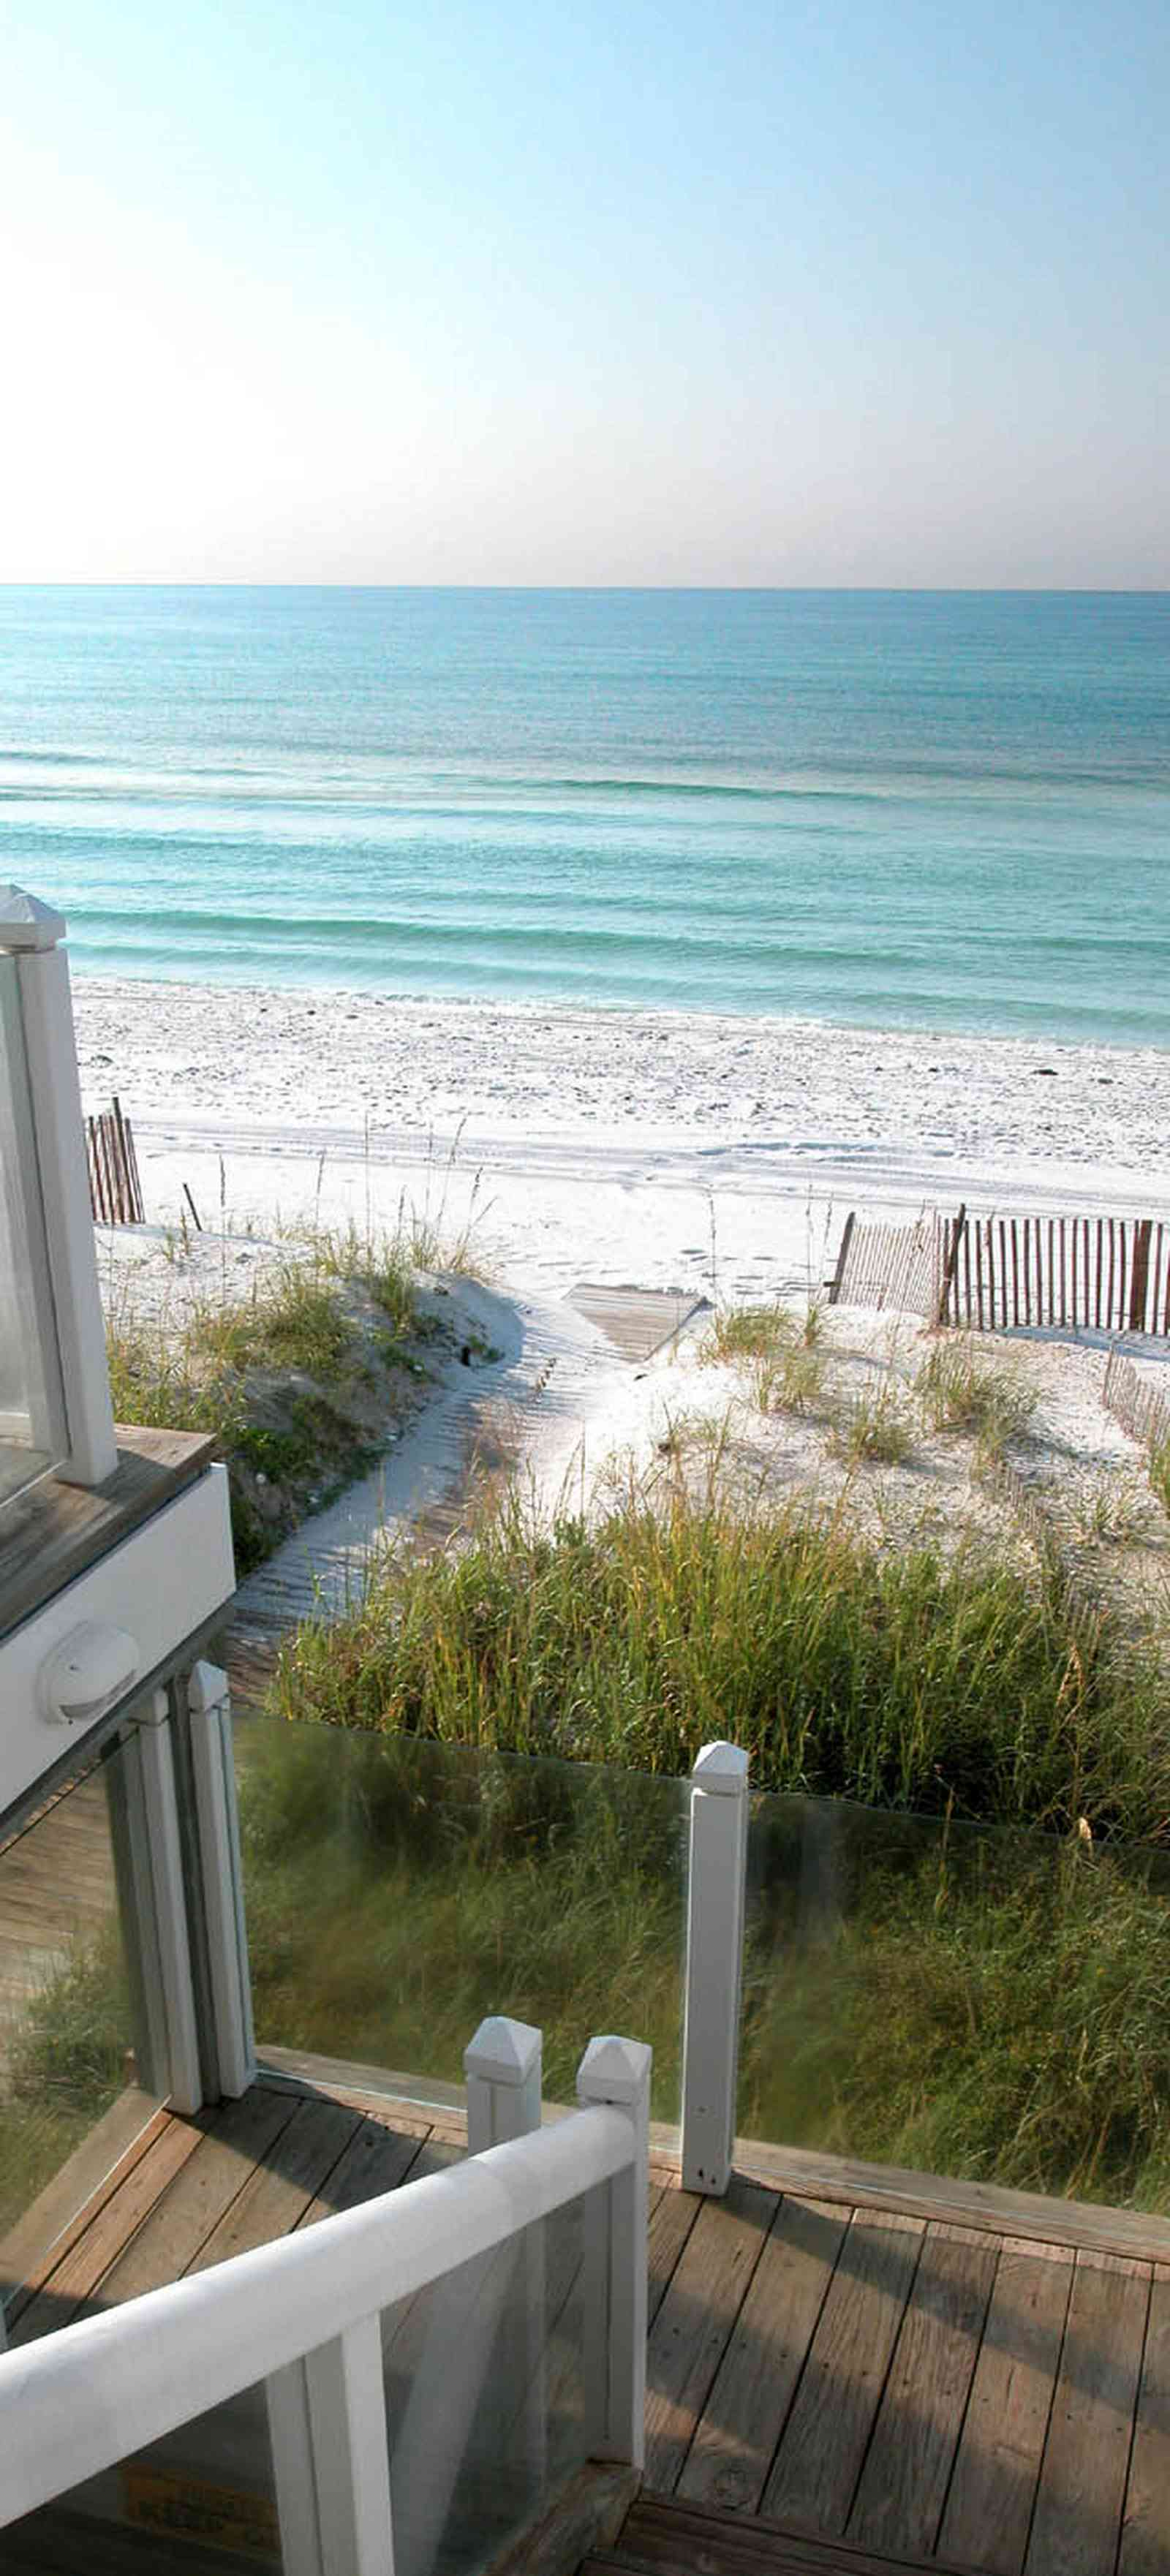 Pensacola-Beach:-Ariola-Drive-Art-Deco-House_09a.jpg:  glass balcony, sea grass, sea oats, dune, boardwalk, deck, porch, staircase, gulf of mexico, beach front house, emerald coast, pensacola beach, beachhouse, dune fence, crystal sand, white sand